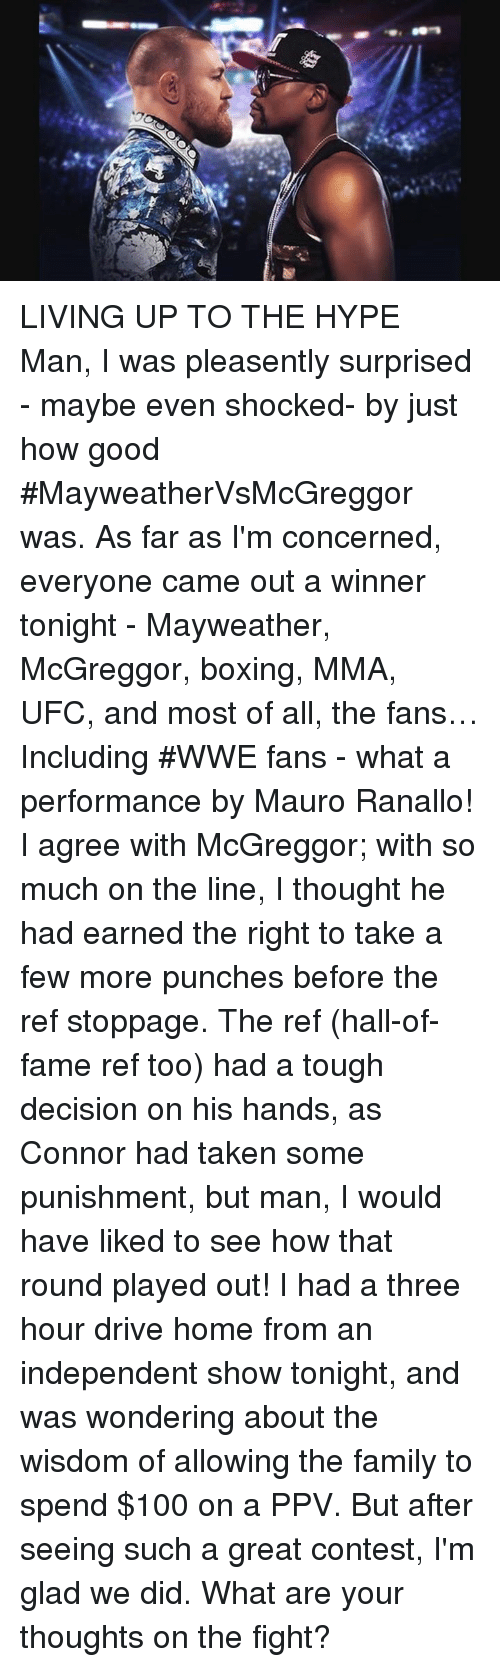 what ares: LIVING UP TO THE HYPE Man, I was pleasently surprised - maybe even shocked- by just how good #MayweatherVsMcGreggor was.  As far as I'm concerned, everyone came out a winner tonight - Mayweather, McGreggor, boxing, MMA, UFC, and  most of all, the fans… Including #WWE fans -  what a performance by Mauro Ranallo! I agree with McGreggor; with so much on the line,  I thought he had earned the right to take a few more punches before the ref stoppage. The ref (hall-of-fame ref too) had a tough decision on his hands, as Connor had taken some punishment, but man,  I would have liked to see how that round played out!   I had a three hour drive home from an independent show tonight, and was  wondering about the wisdom of allowing the family to spend $100 on a PPV.  But after seeing such a great contest, I'm glad we did.  What are your thoughts on the fight?